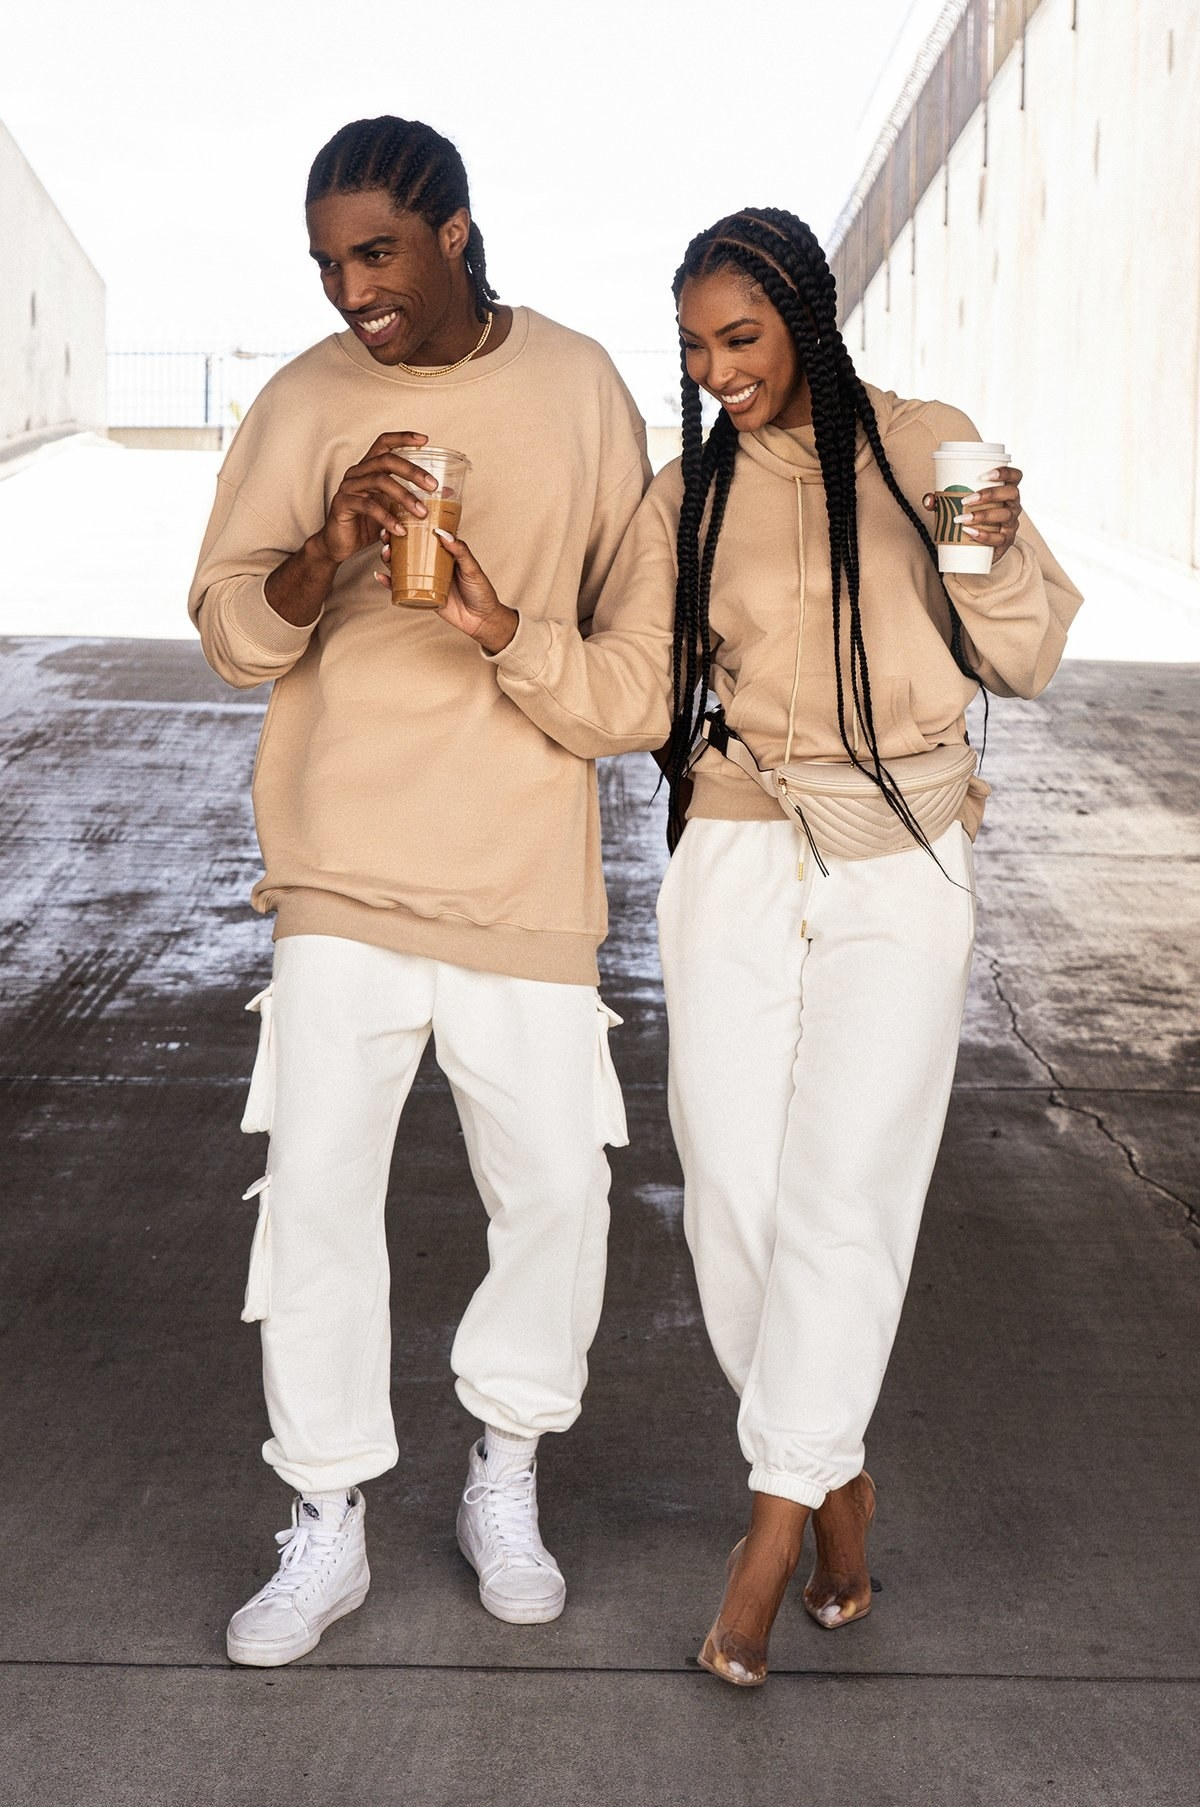 male and female model wearing the tan sweatshirts with with white joggers. The guy has on white sneakers while the woman has on clear heels. Her sweatshirt also has a fanny pack over it.